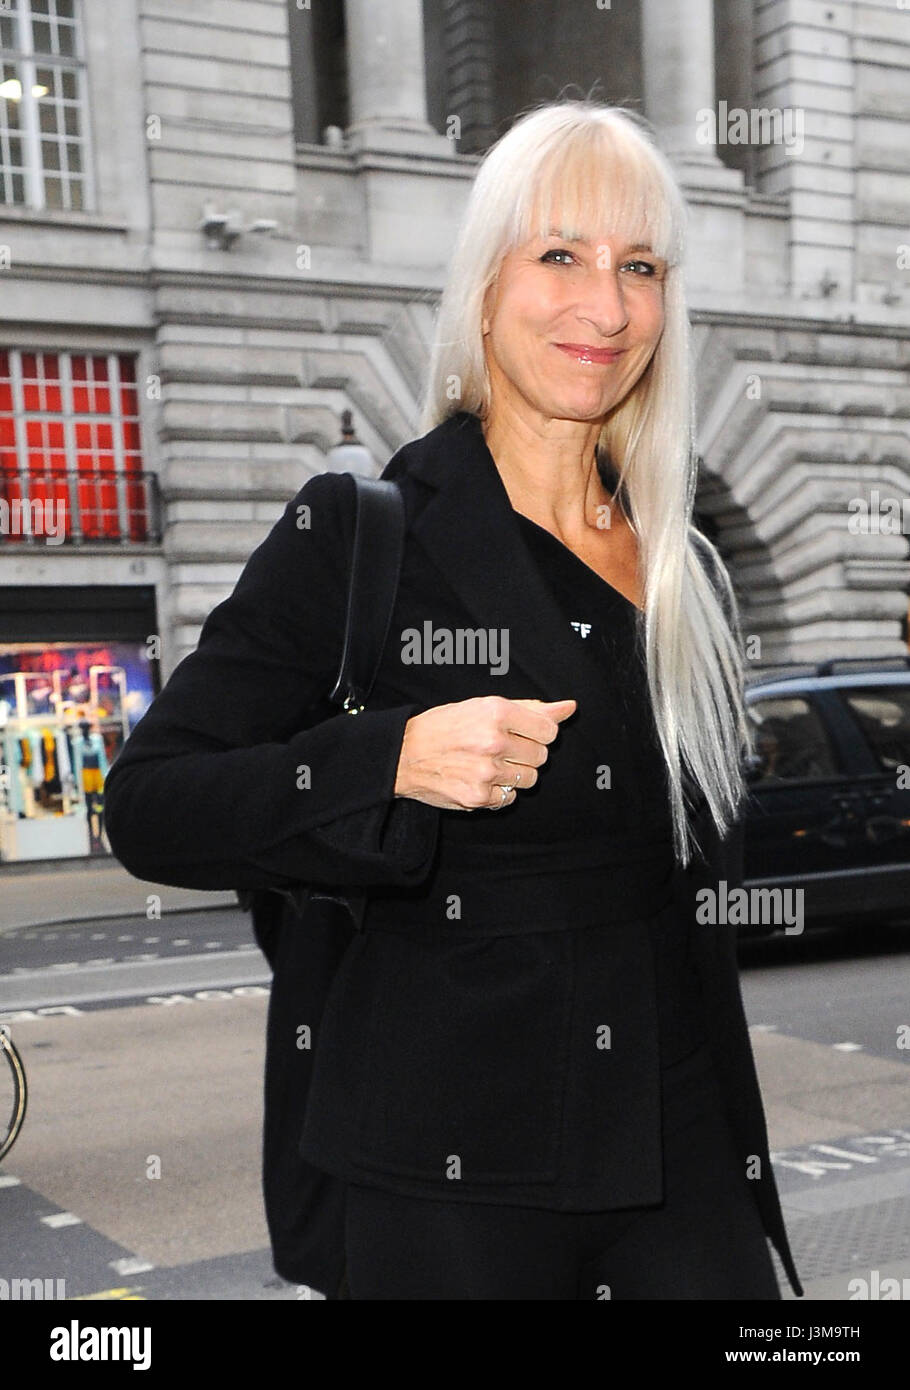 Vip S Arriving At The Bfc Vogue Designer Fashion Fund Cocktail Stock Photo Alamy